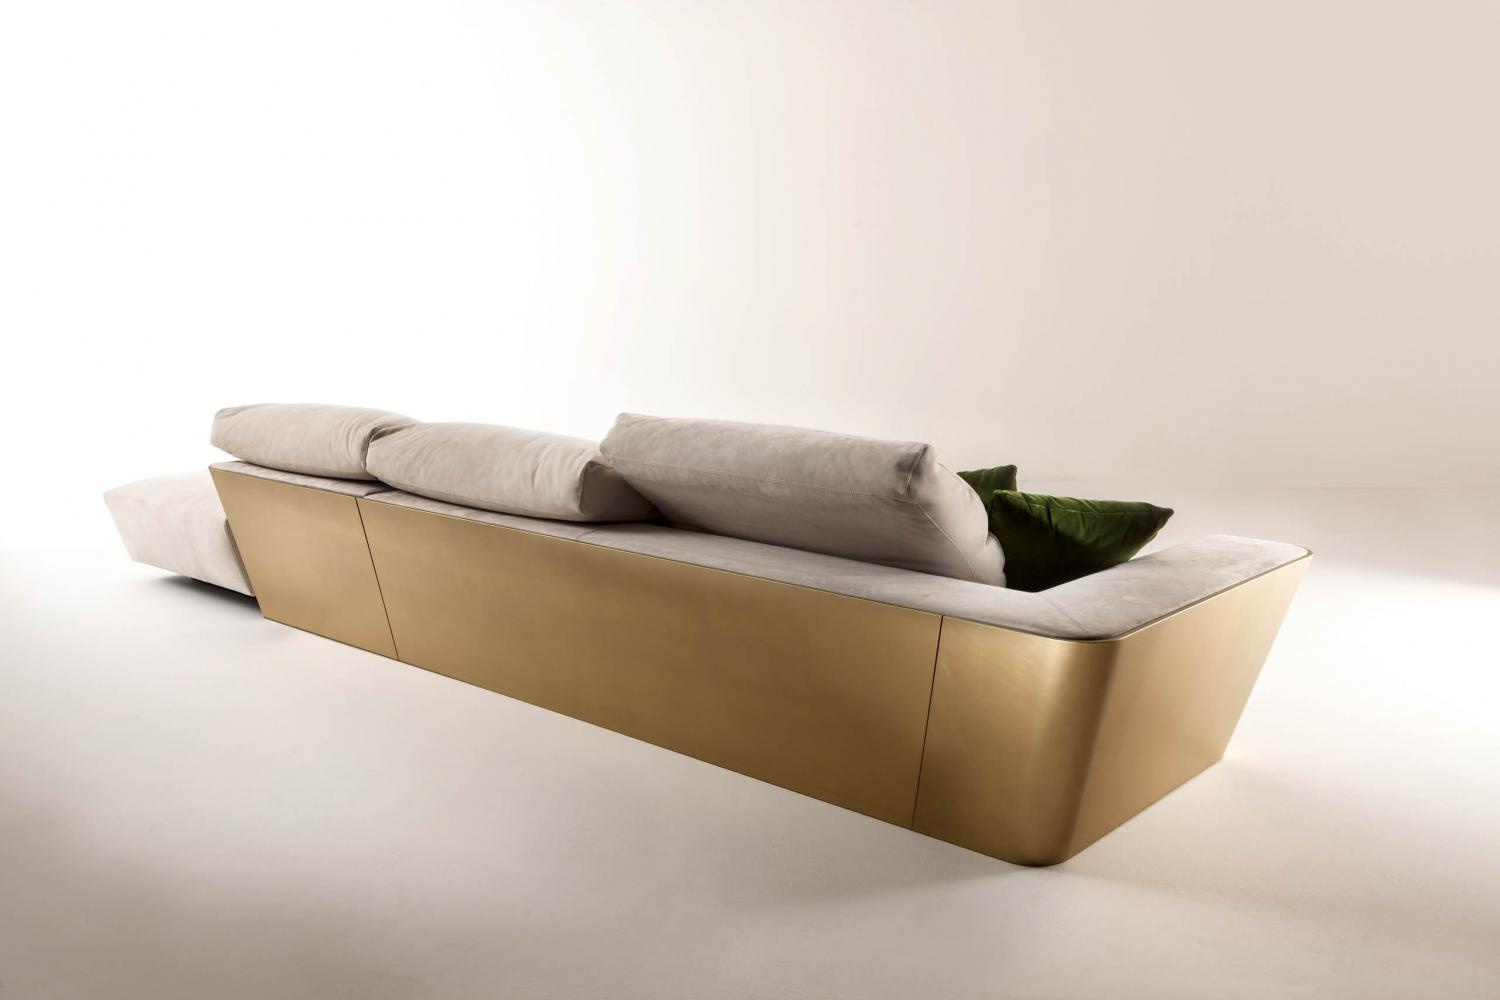 luxury modern design sofa with chaise longue in white nubuk leather and gold lacquered structure